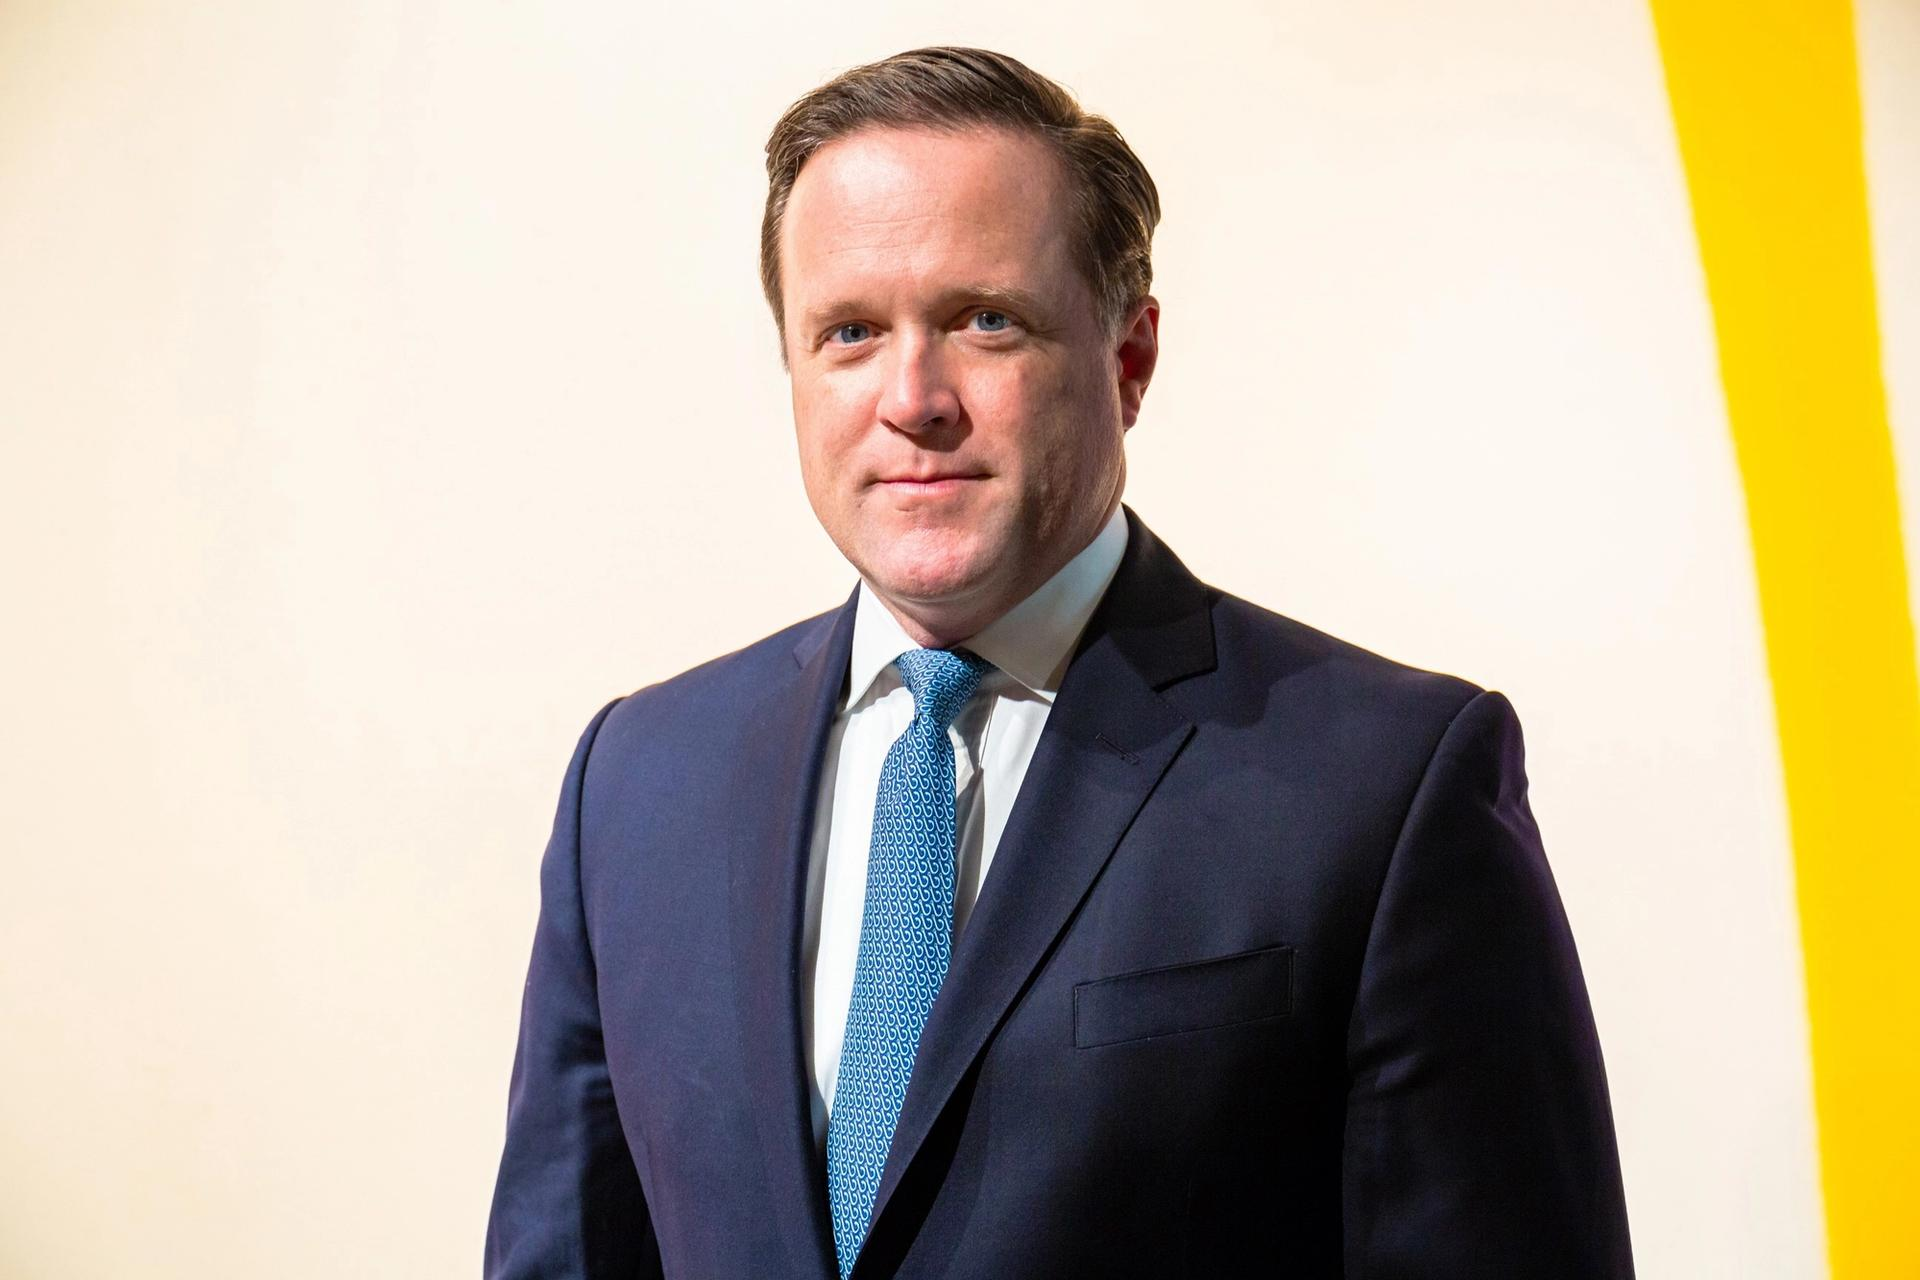 Charles F. Stewart, the new chief executive of Sotheby's Courtesy Sotheby's